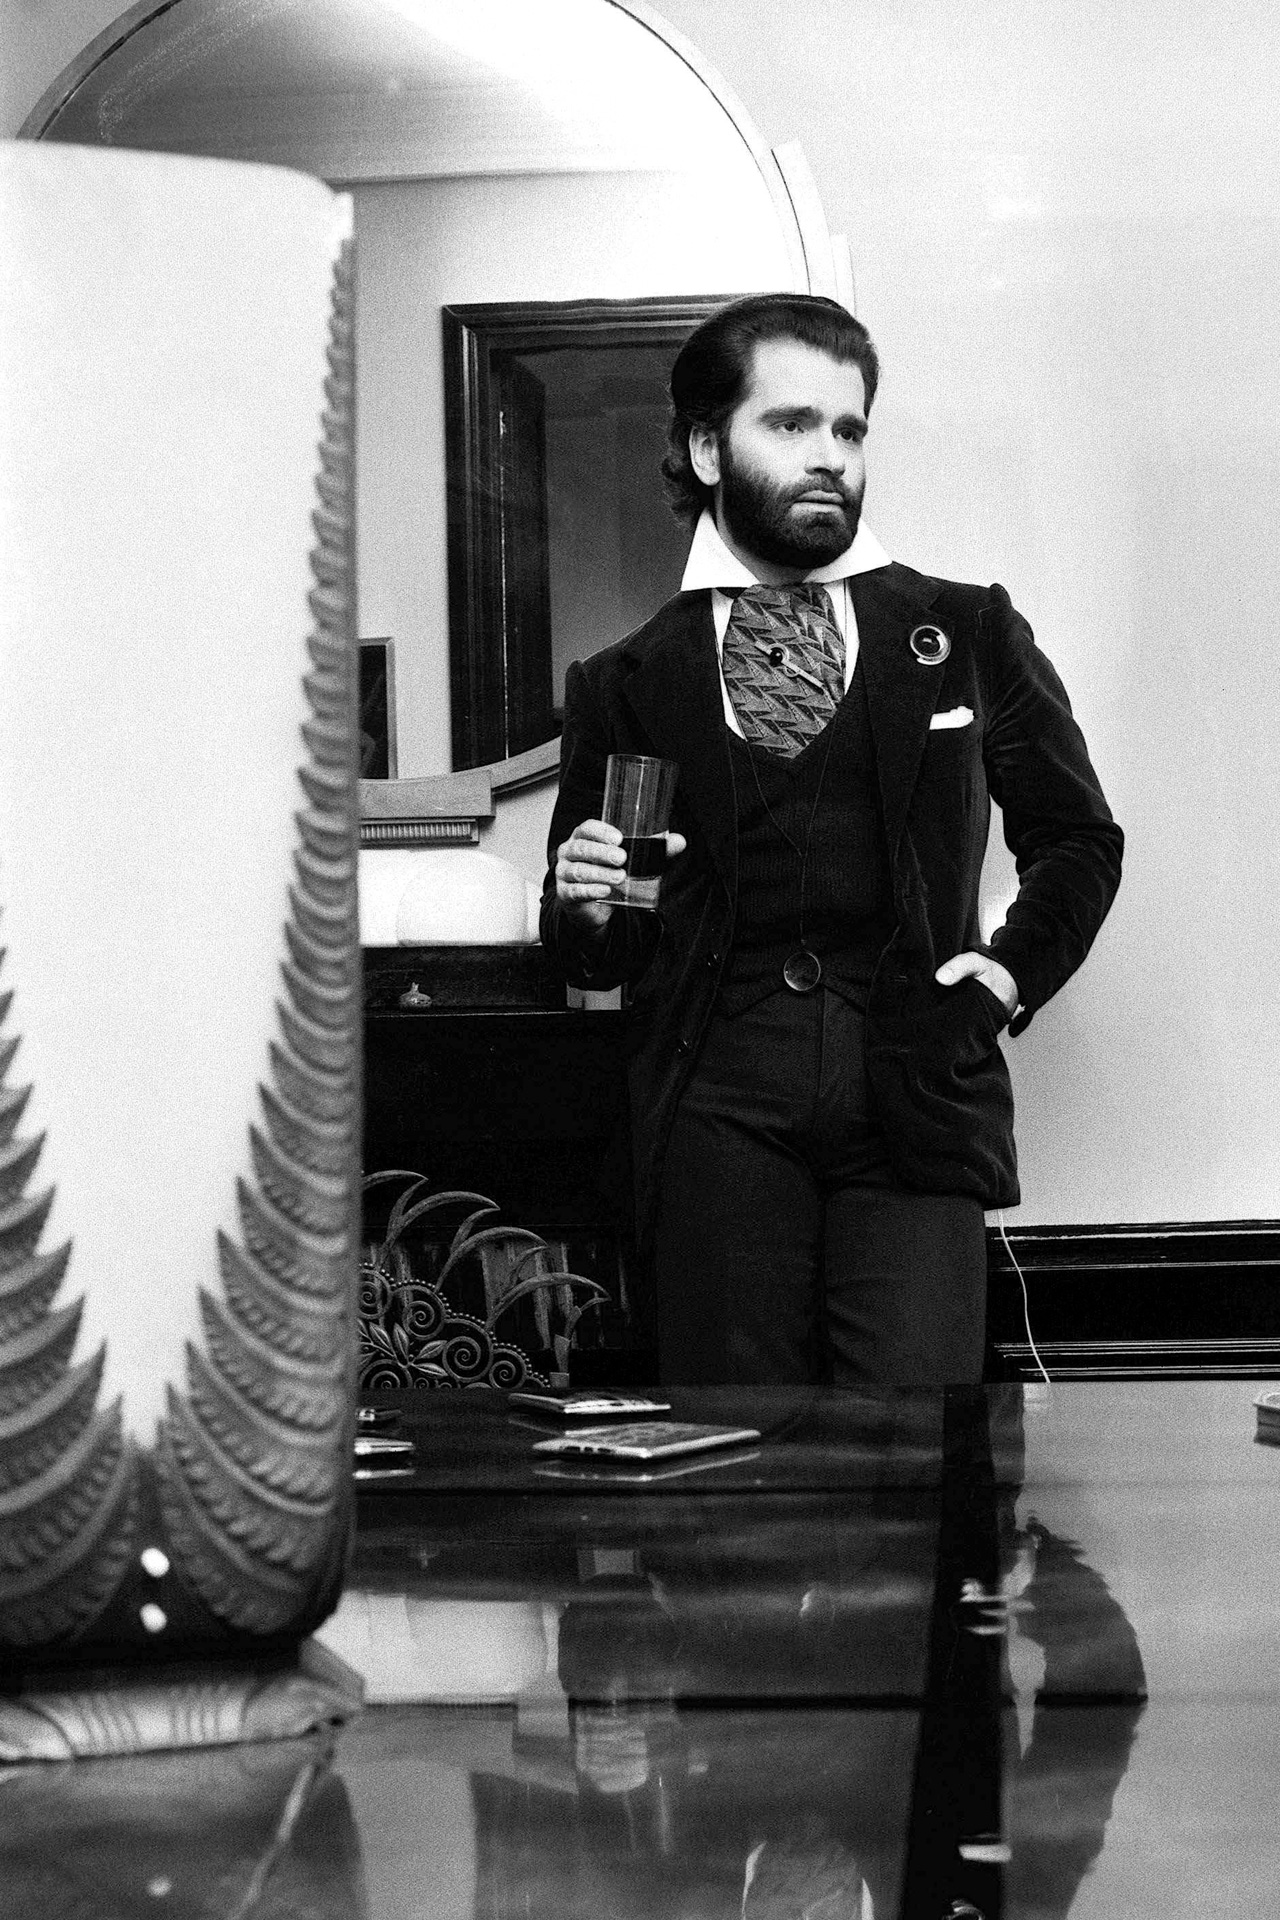 Young Karl in 1973.